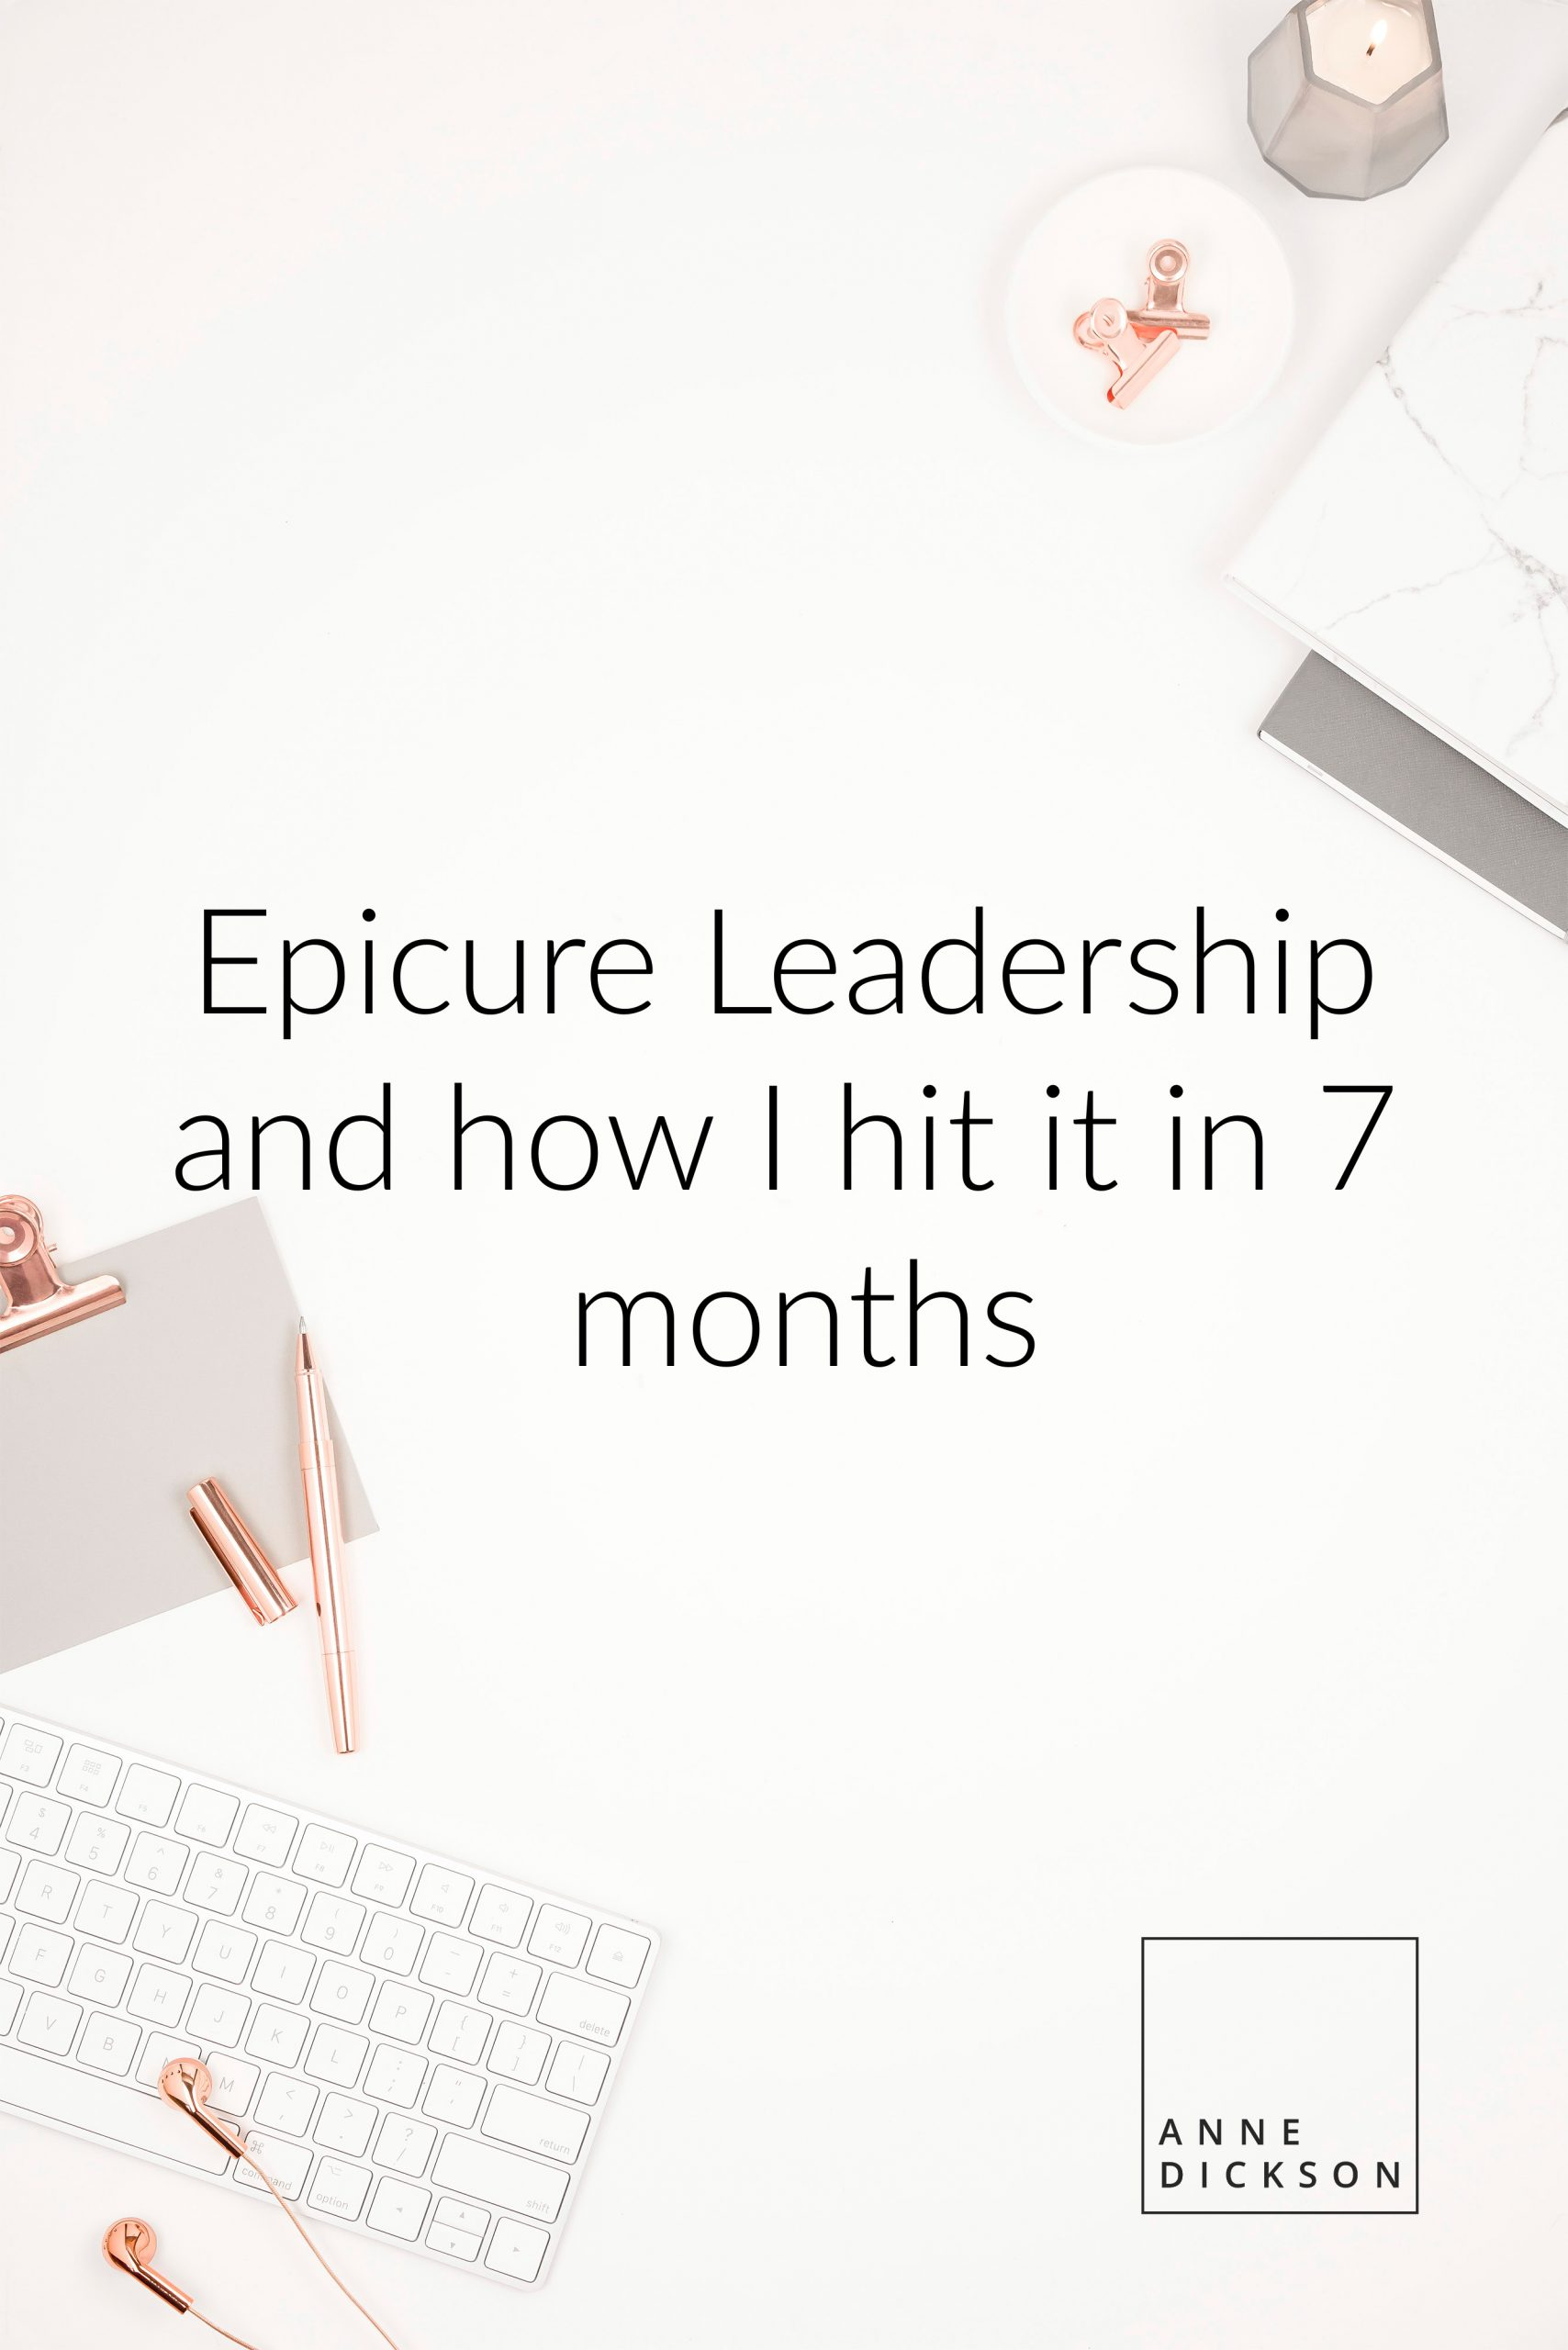 Epicure Leadership and how I hit it in 7 months